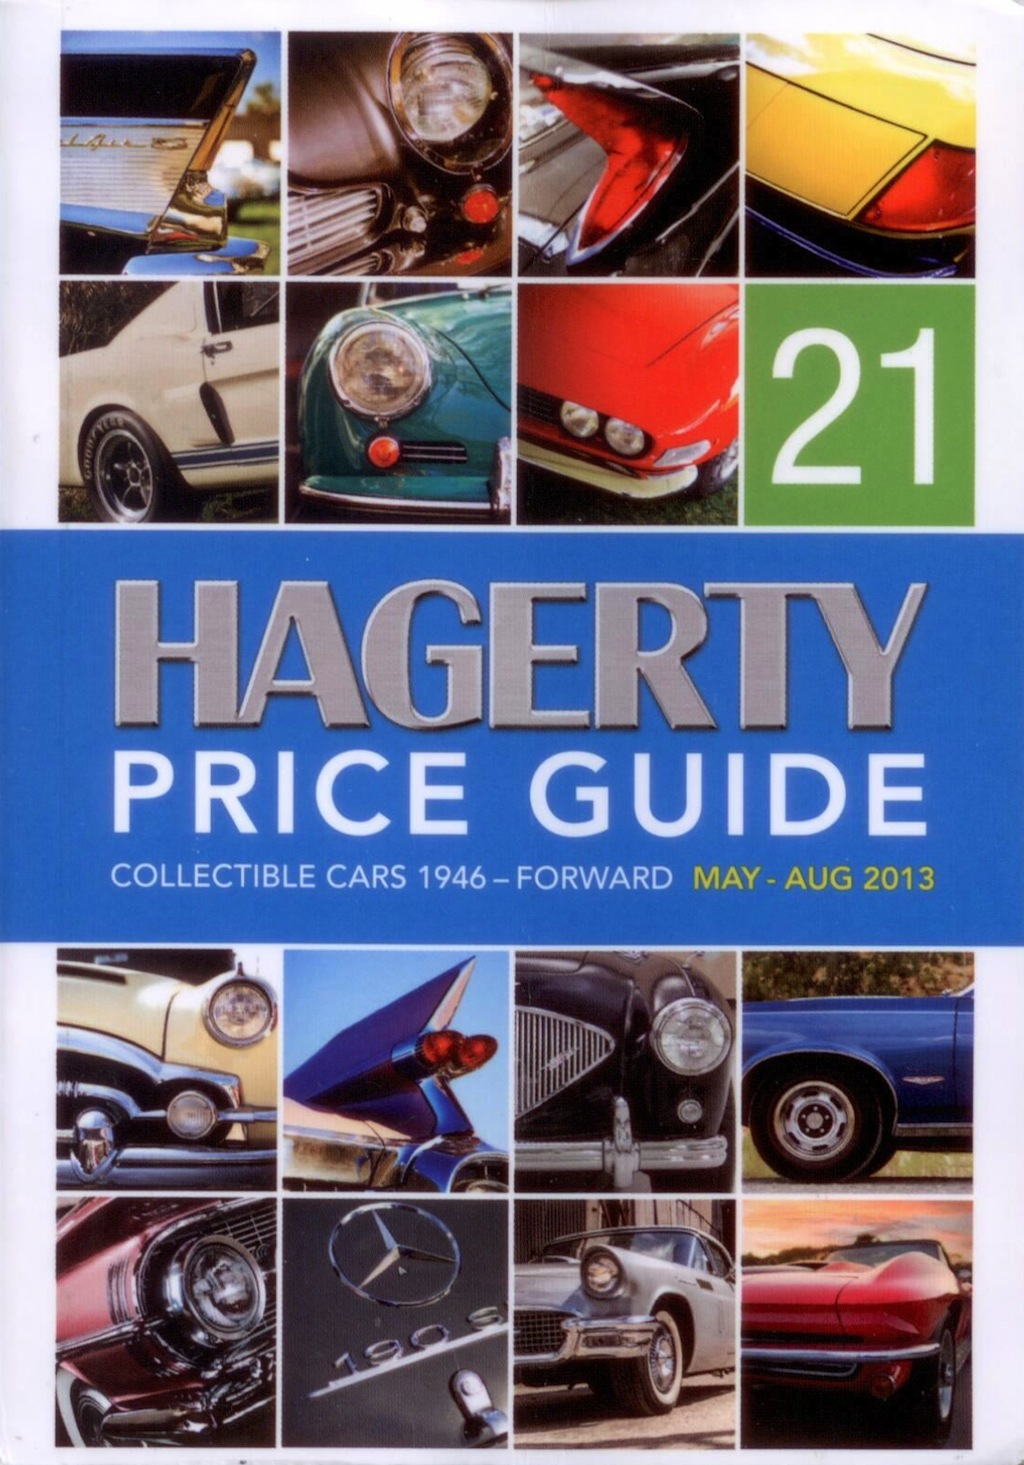 Hagerty Price Guide >> Hagerty Price Guide Hagerty Car Value